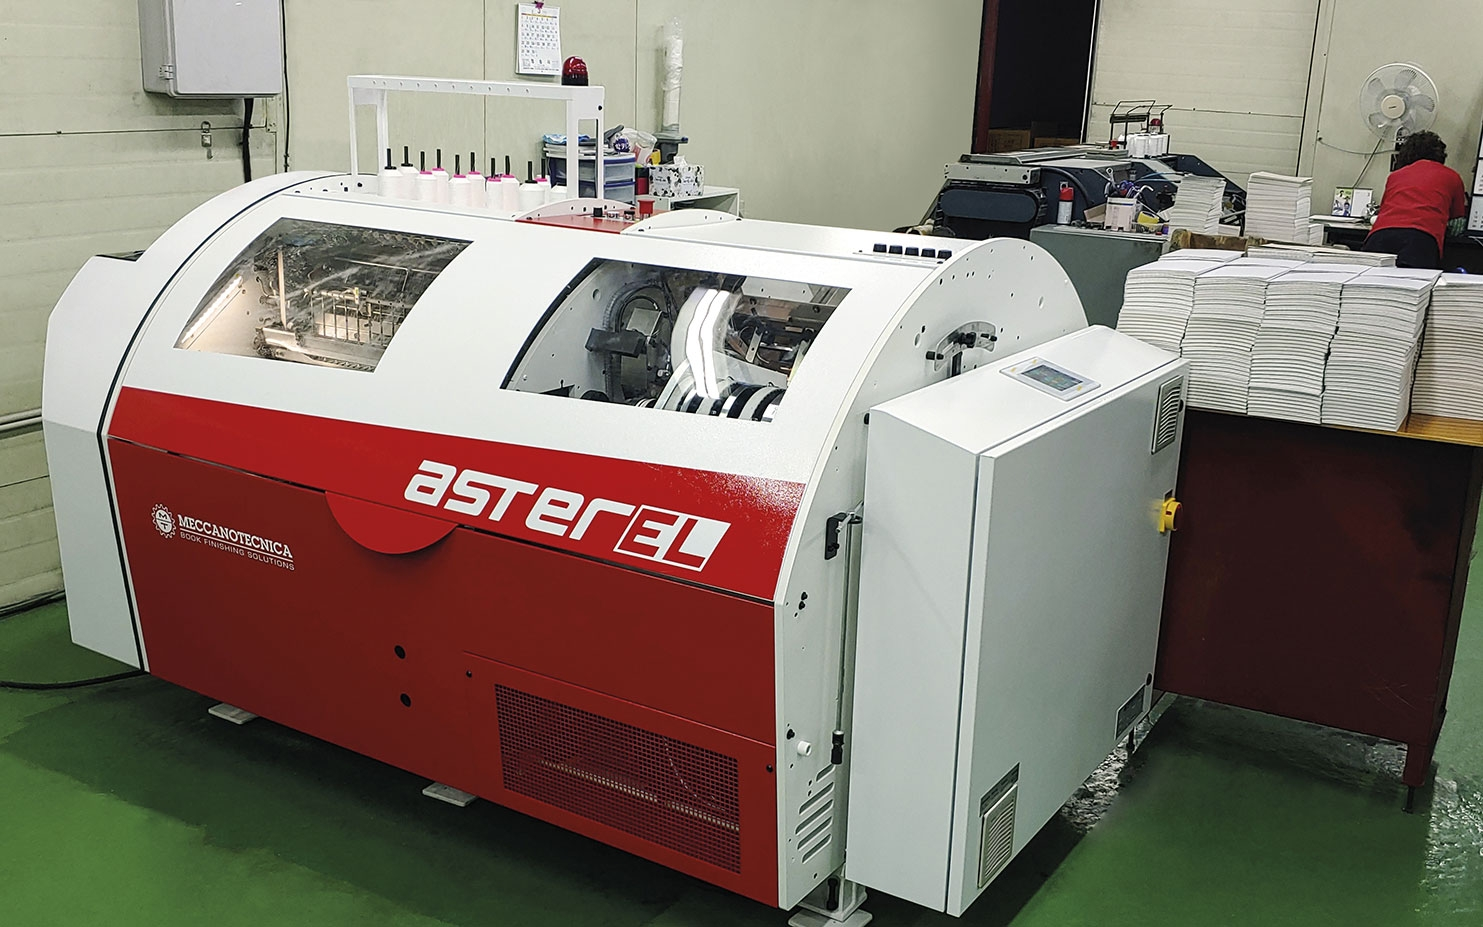 Woosung Binding has recently installed a brand new asterEL, automatic book sewing machine